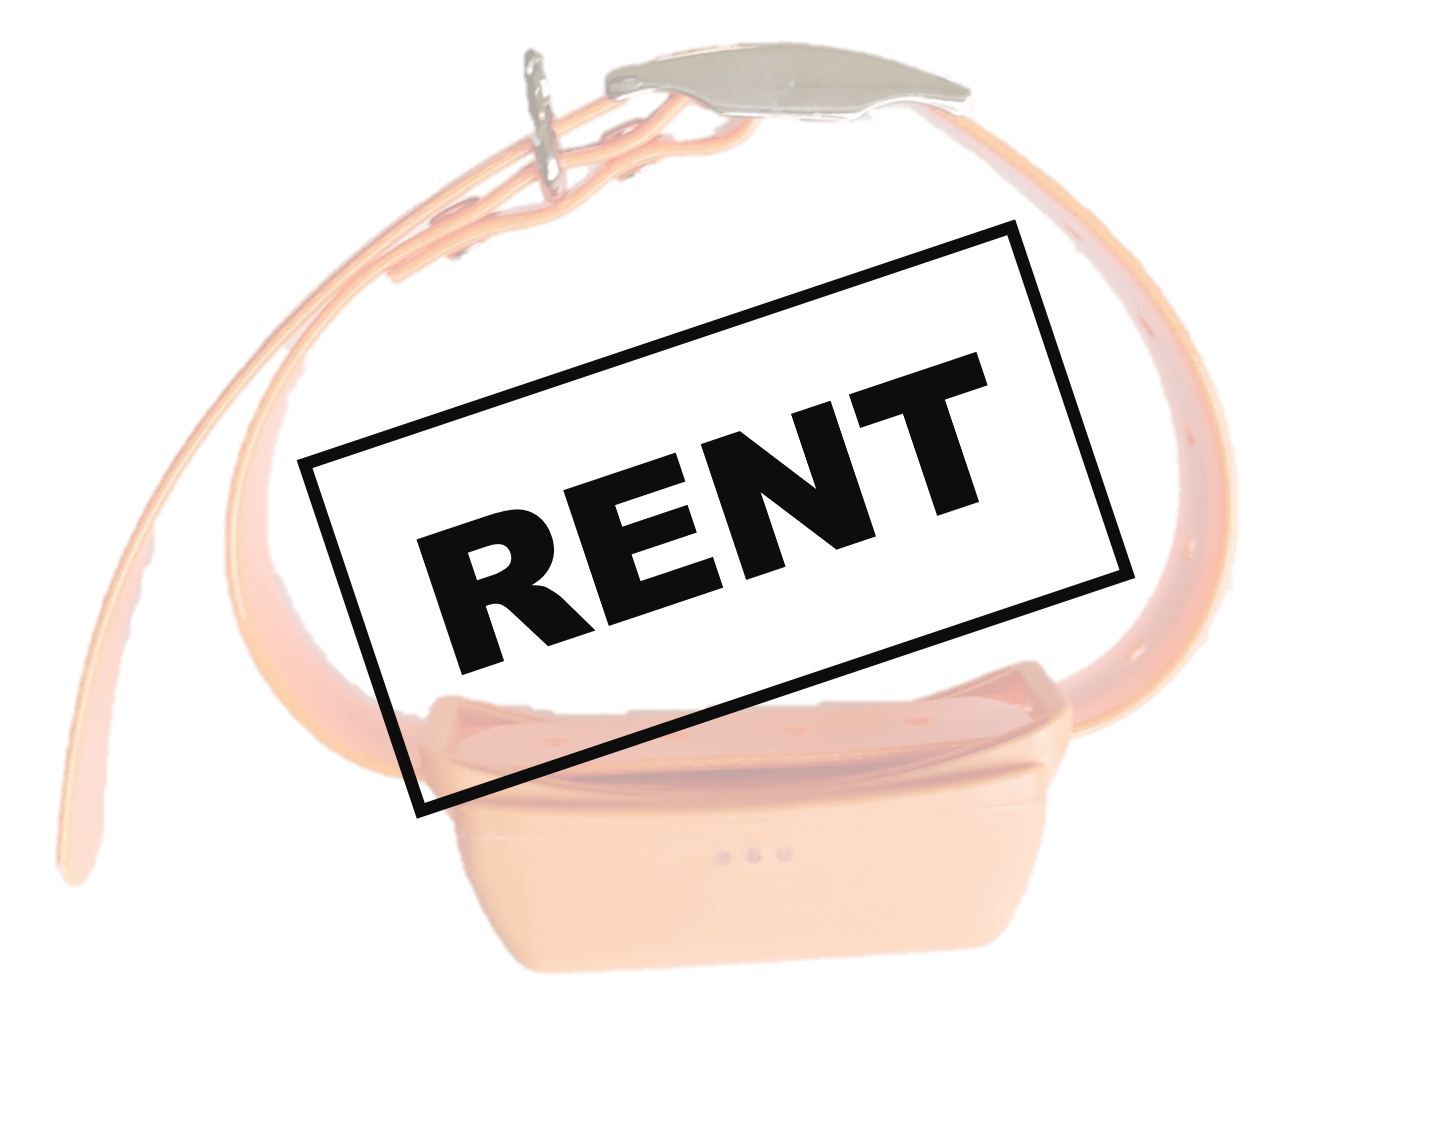 Rent of dog tracker – 1 month